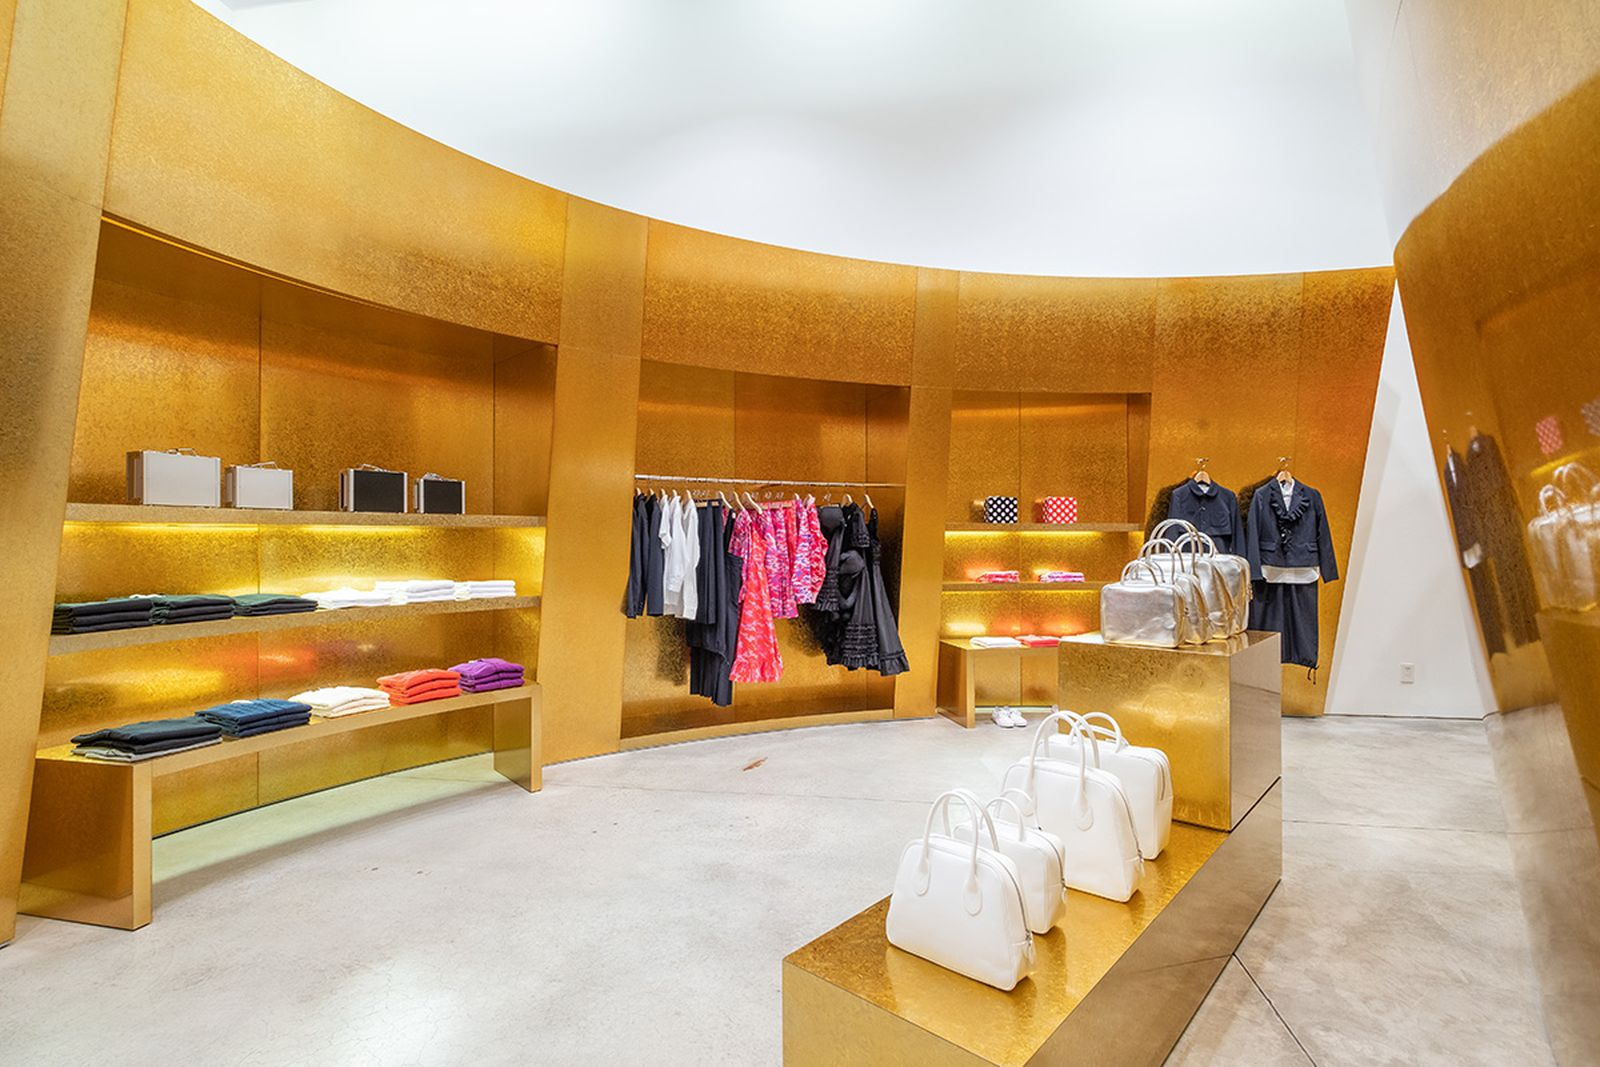 game-changers-best-store-interiors-changed-fashion-cdg-new-05